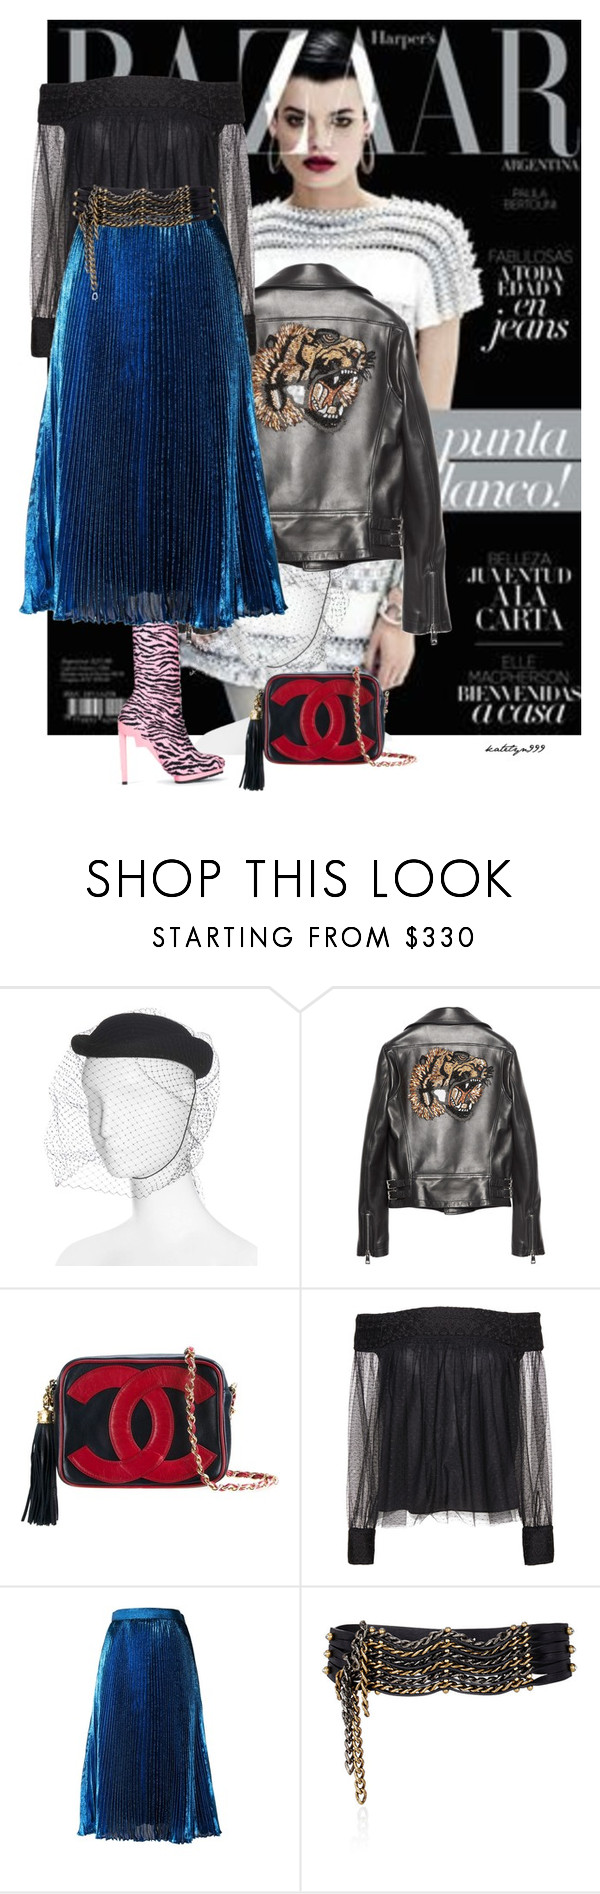 """""""..."""" by katelyn999 ❤ liked on Polyvore featuring Gucci, Chanel, Alice + Olivia, Christopher Kane and Lanvin"""